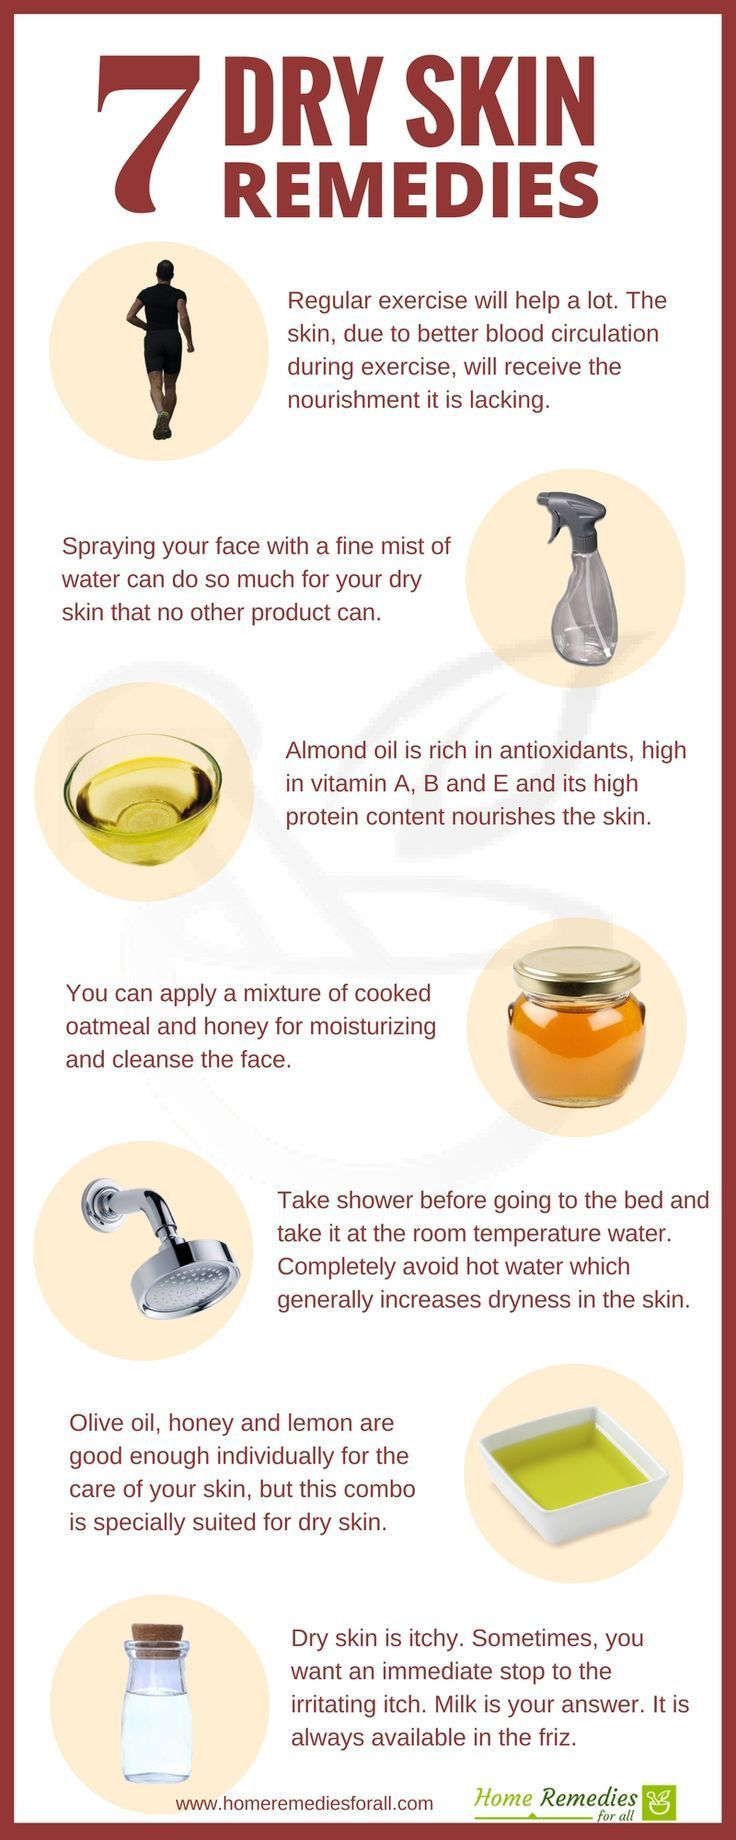 These 7 Most Effective Home Remedies Will Get Rid Of Your Dry Skin To Make Your Skin Smooth And Silky Homemades Dry Skin Care Skin Remedies Dry Skin Remedies